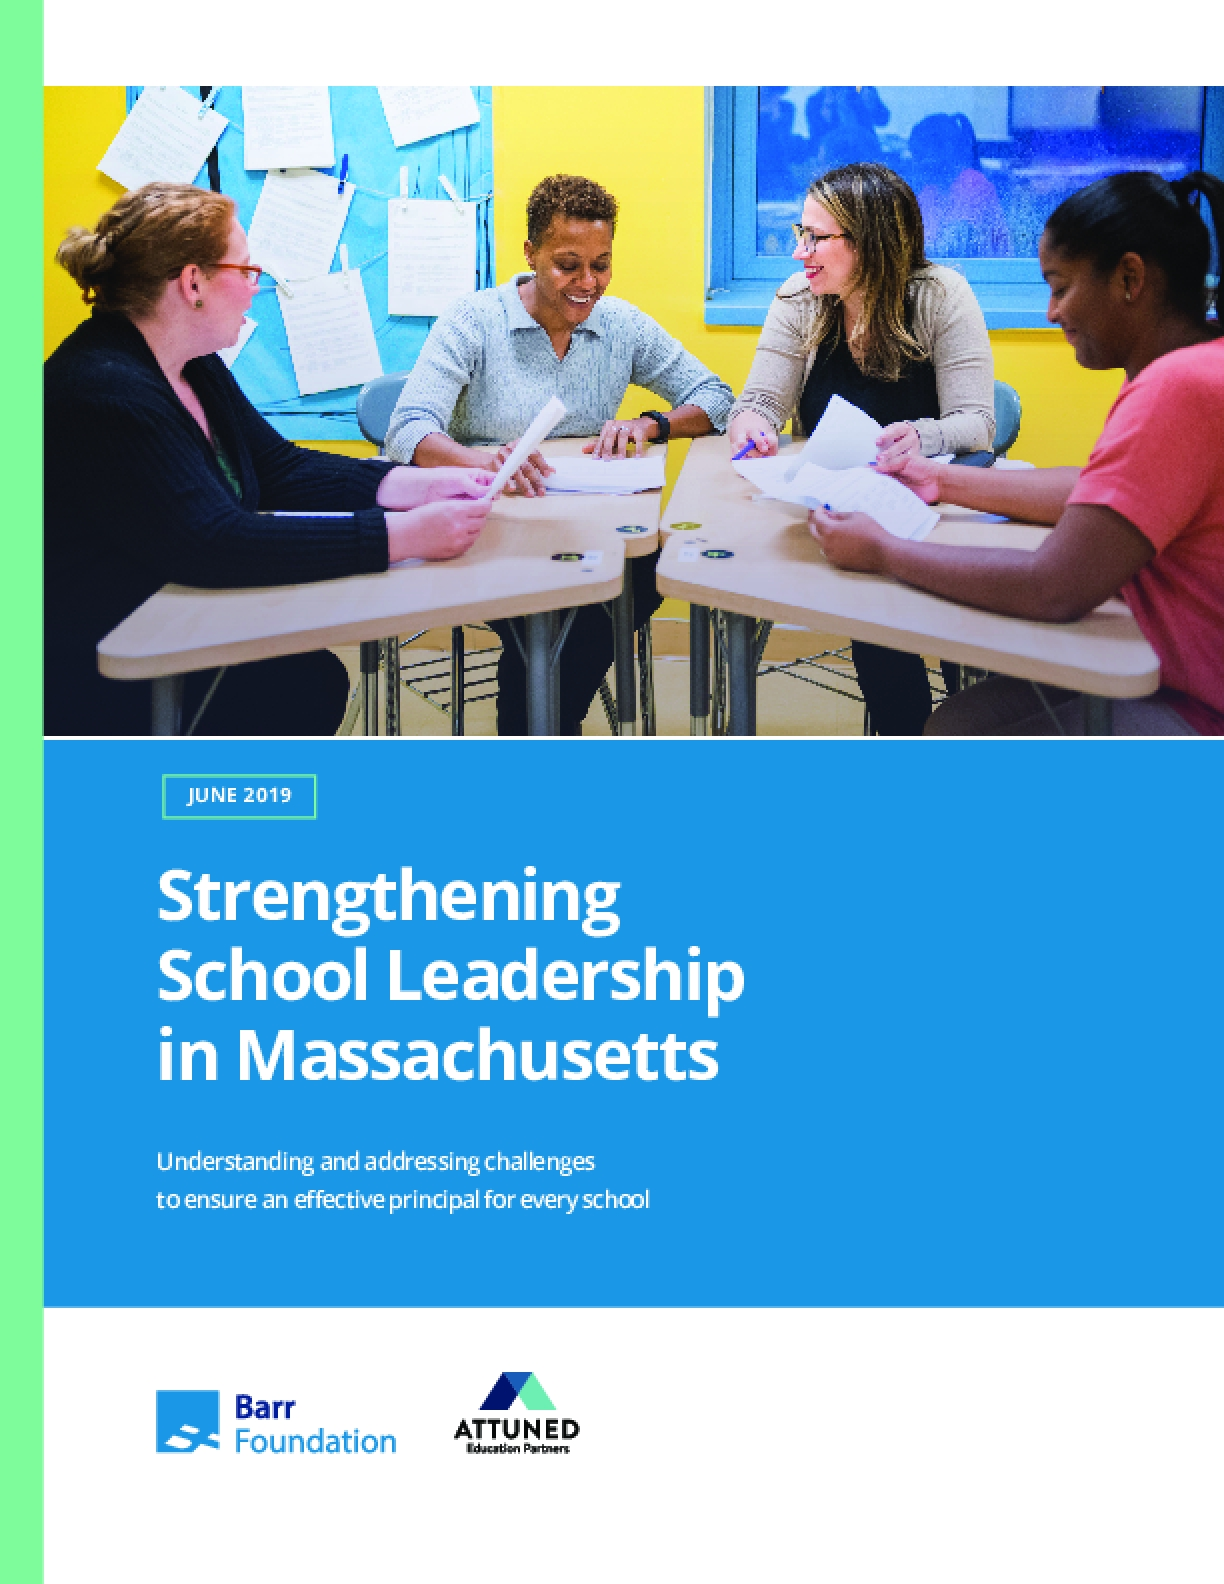 Strengthening School Leadership in Massachusetts